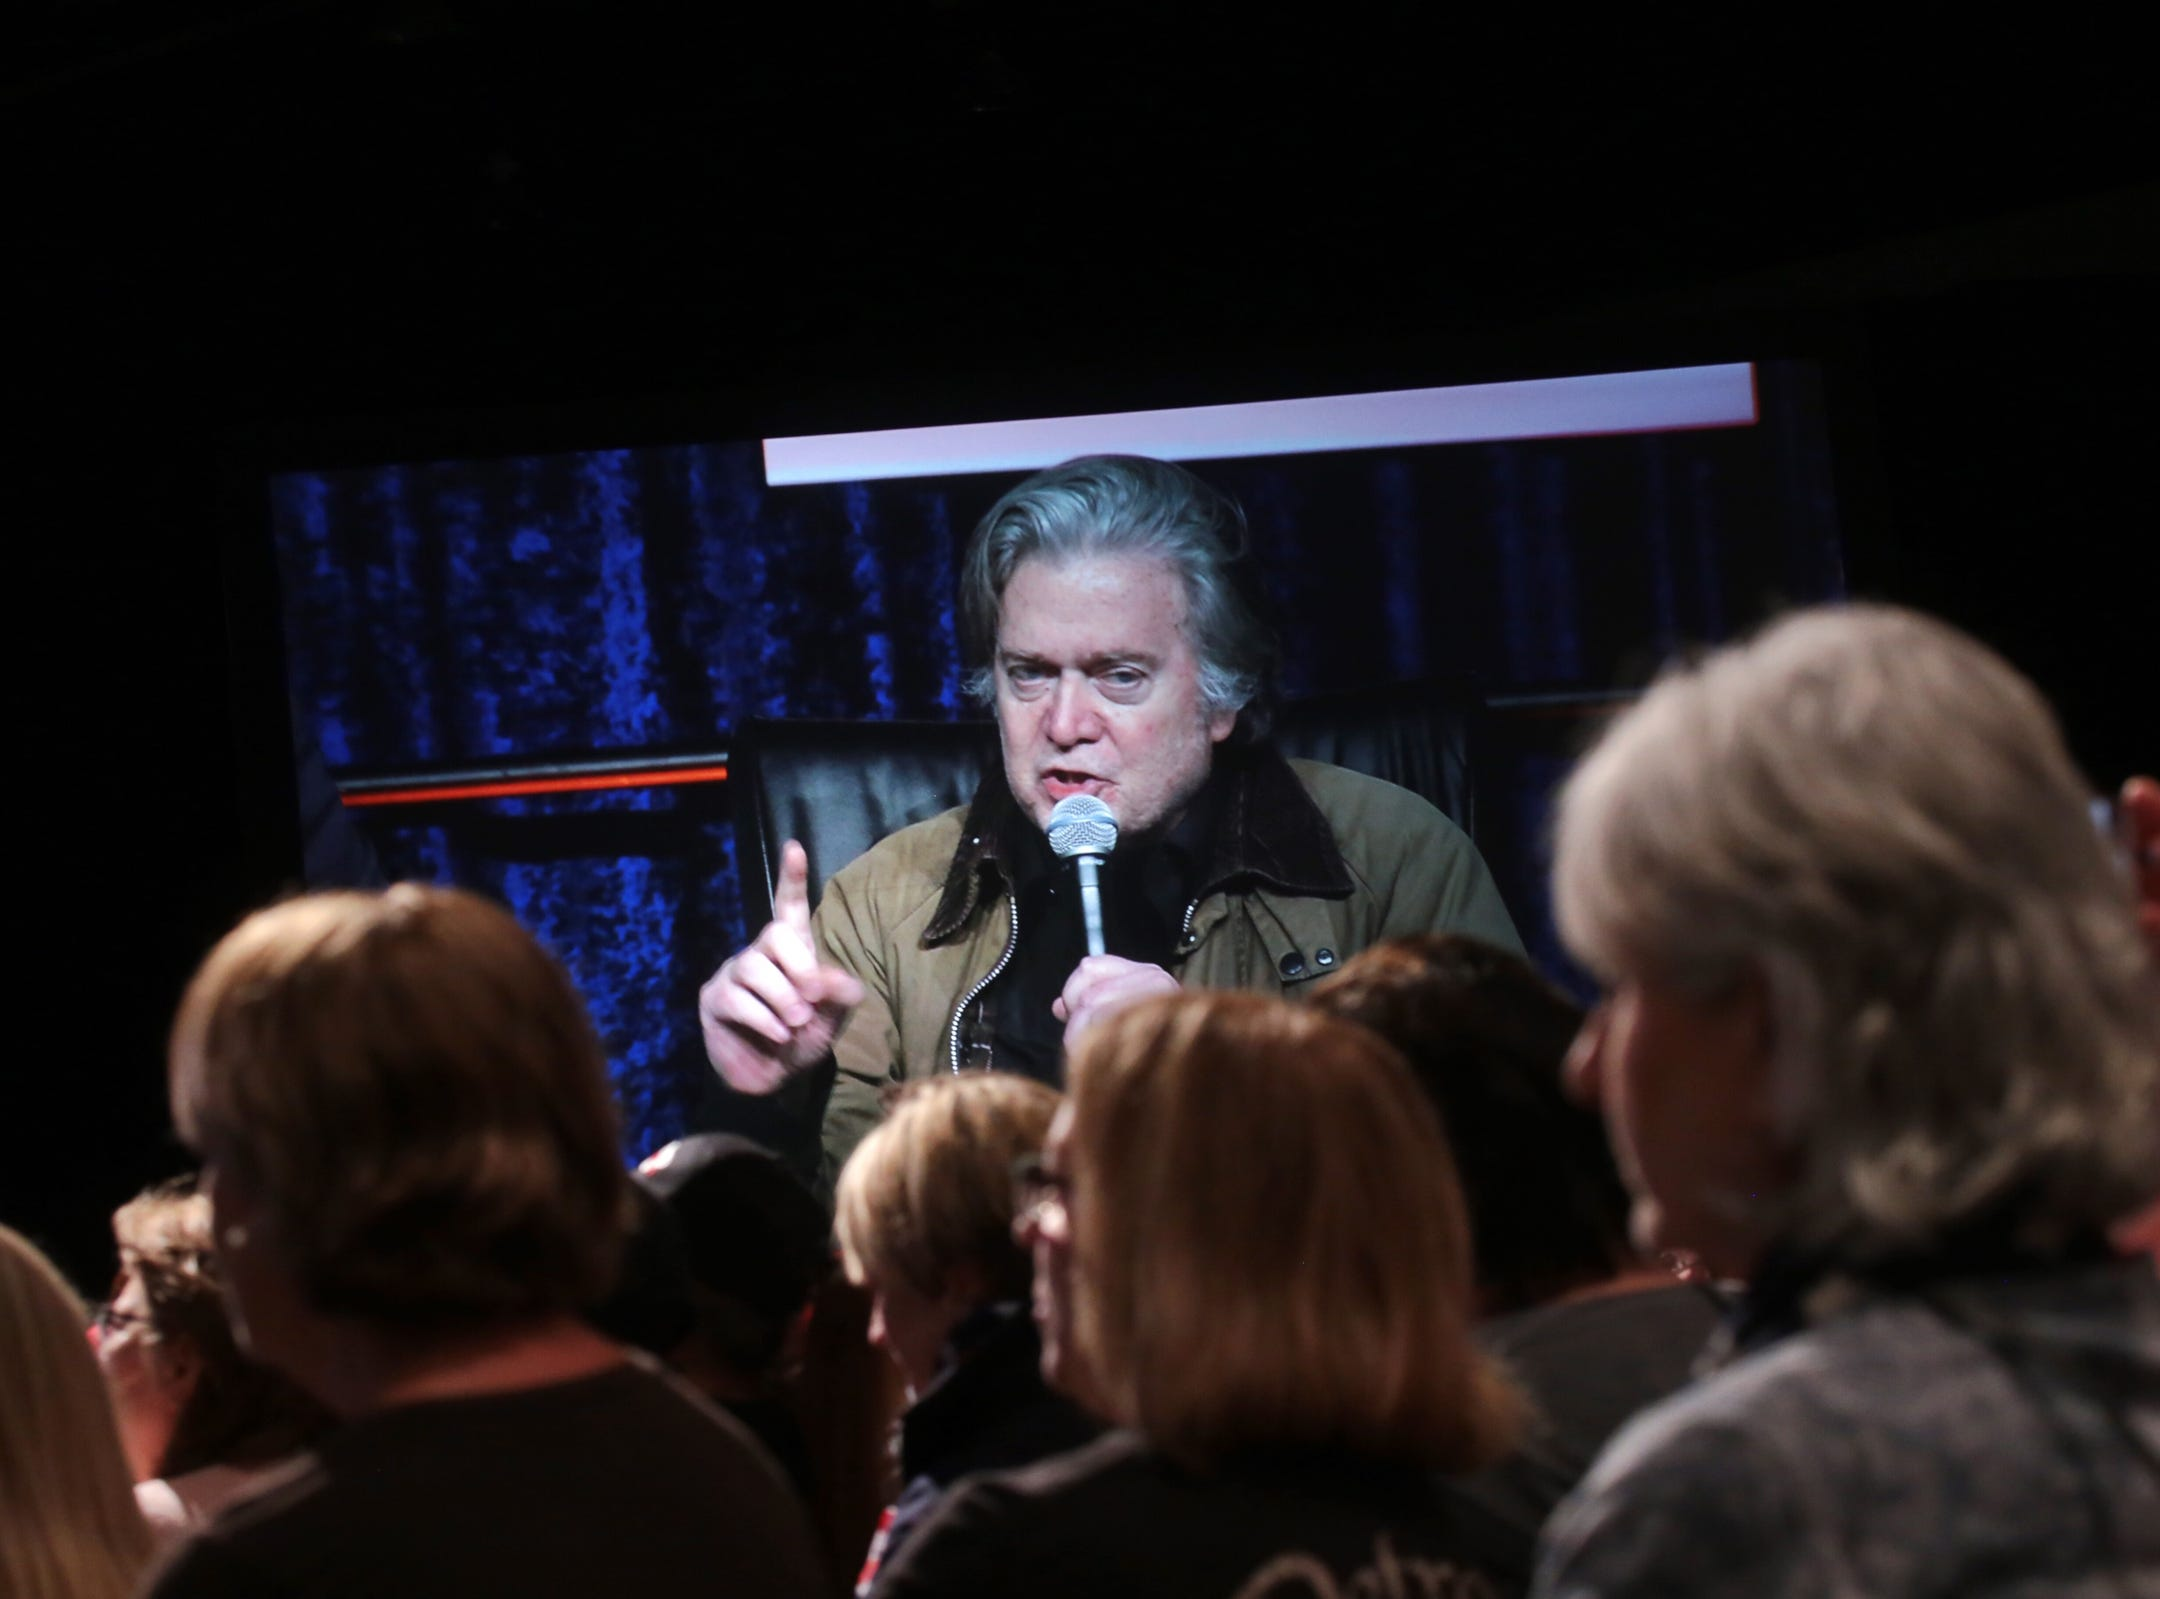 """Supporters listen as Steve Bannon's nationwide tour stop named """"We Build the Wall"""" in support Trump's wish for $7-billion expansion of border wall with Mexico, aimed at stopping illegal immigration on Thursday, March 14, 2019 at Cobo Center in downtown Detroit."""